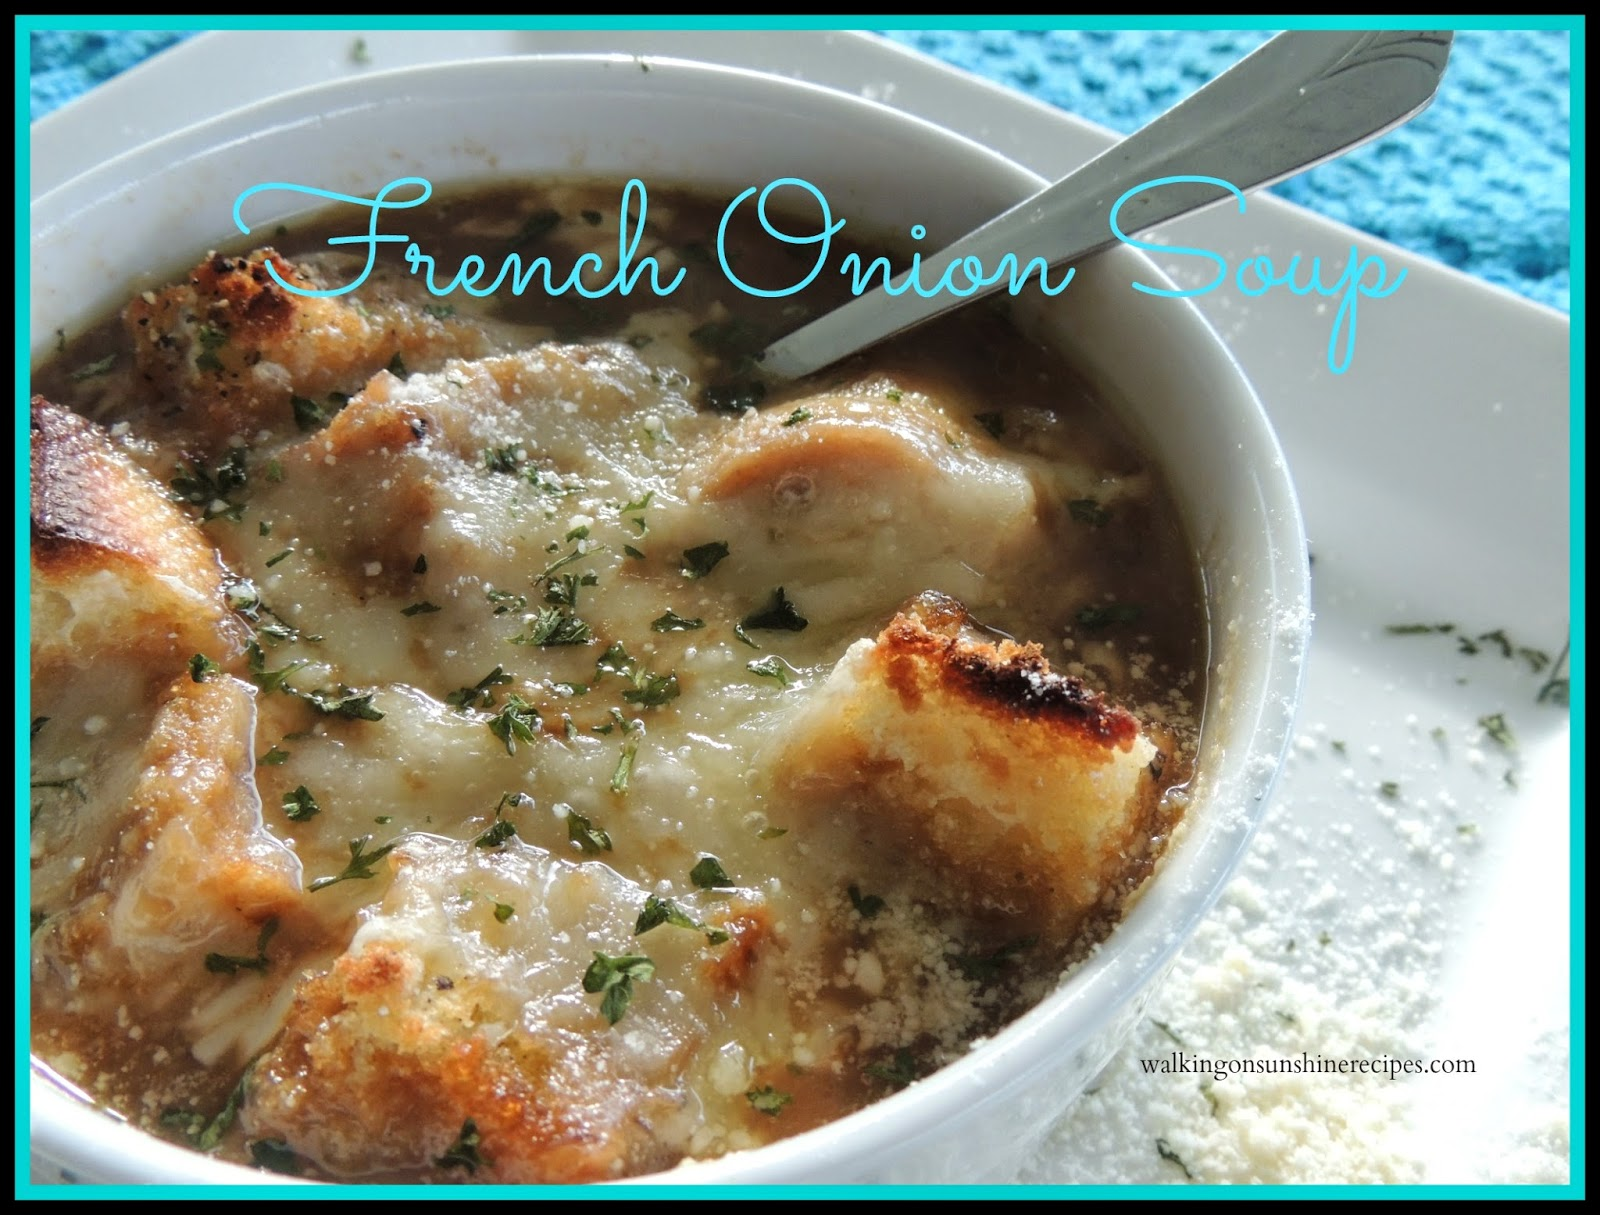 EASY French Onion Soup | Walking on Sunshine